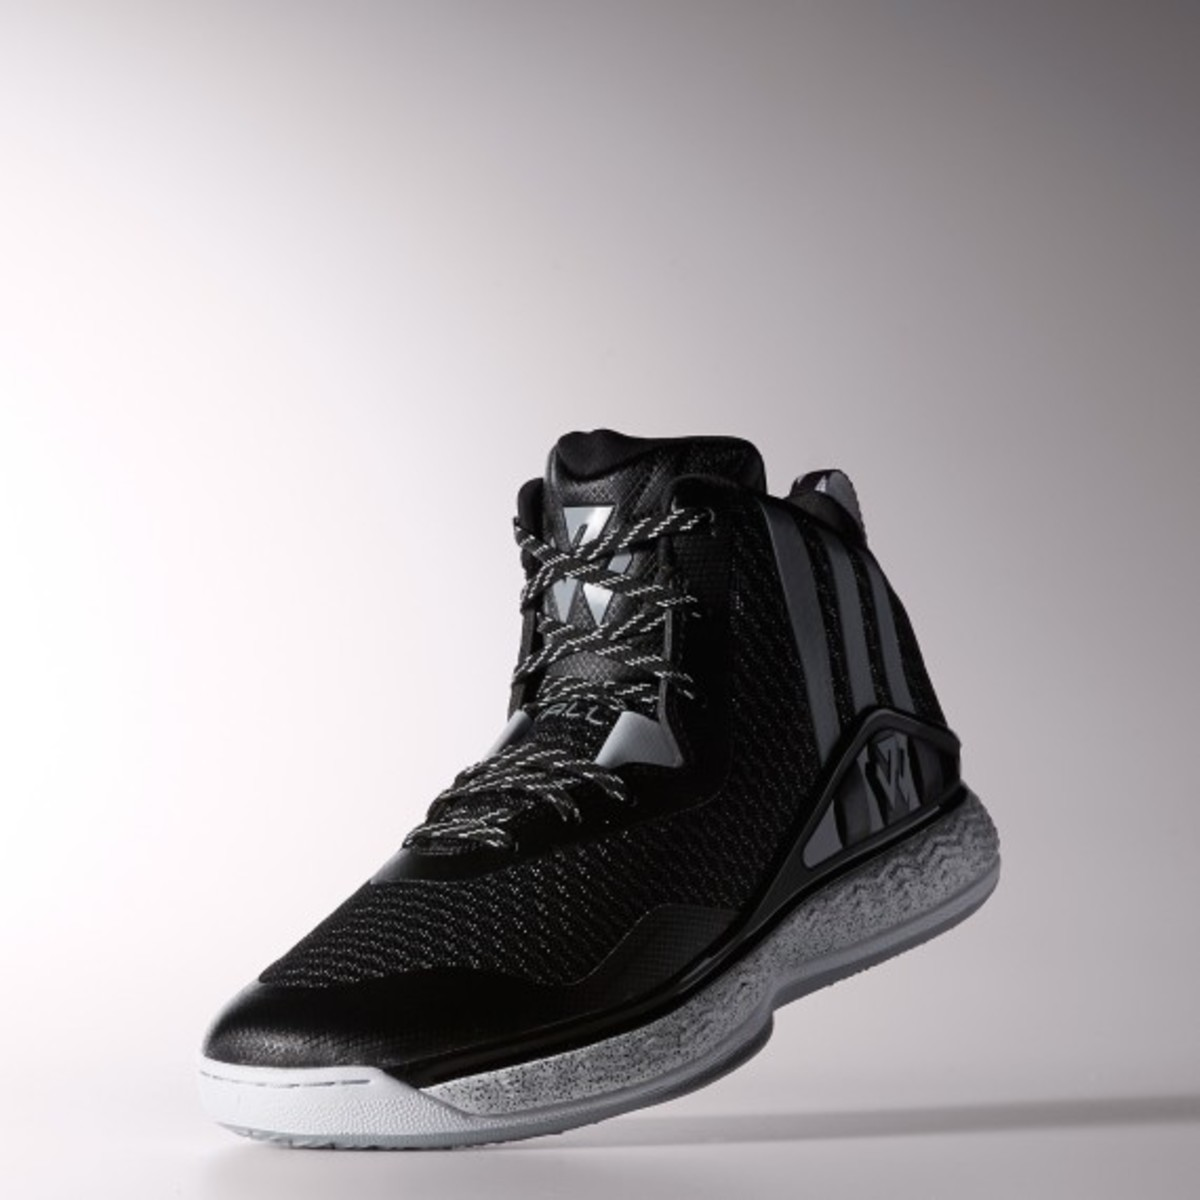 adidas-j-wall-1-signature-basketball-shoe-03